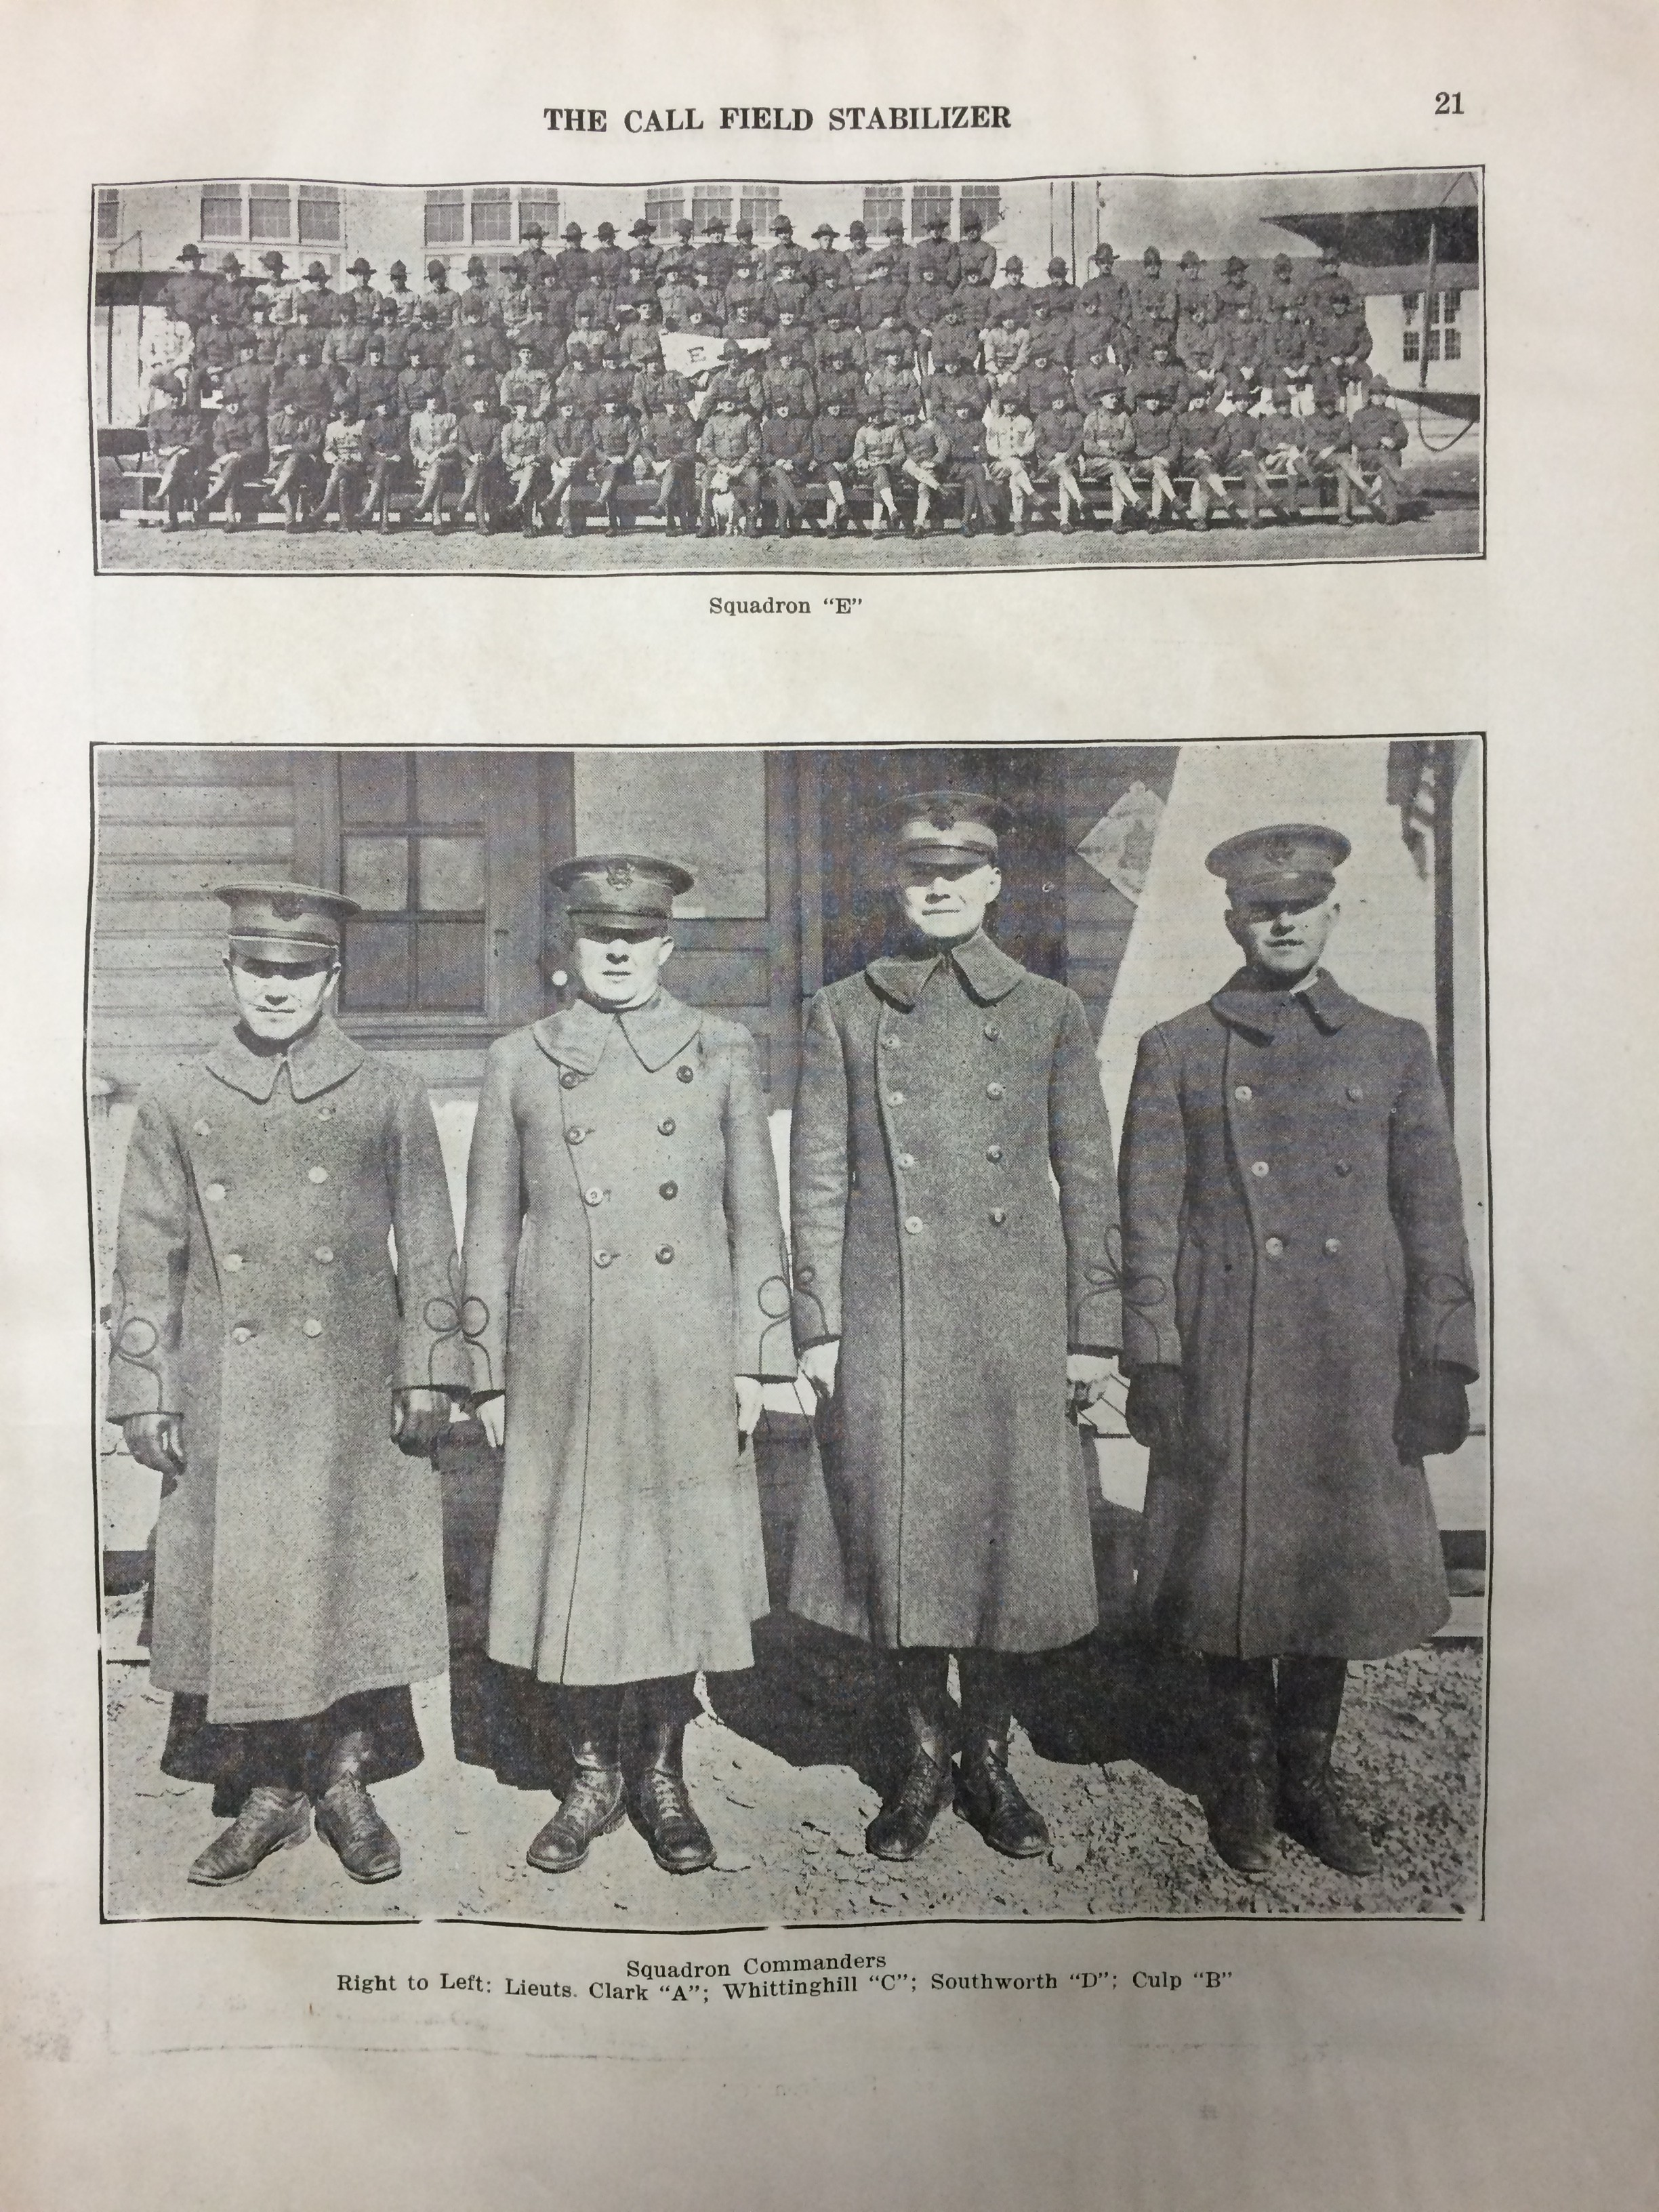 Image 21 December 15, 1918 Call Field Stabilizer